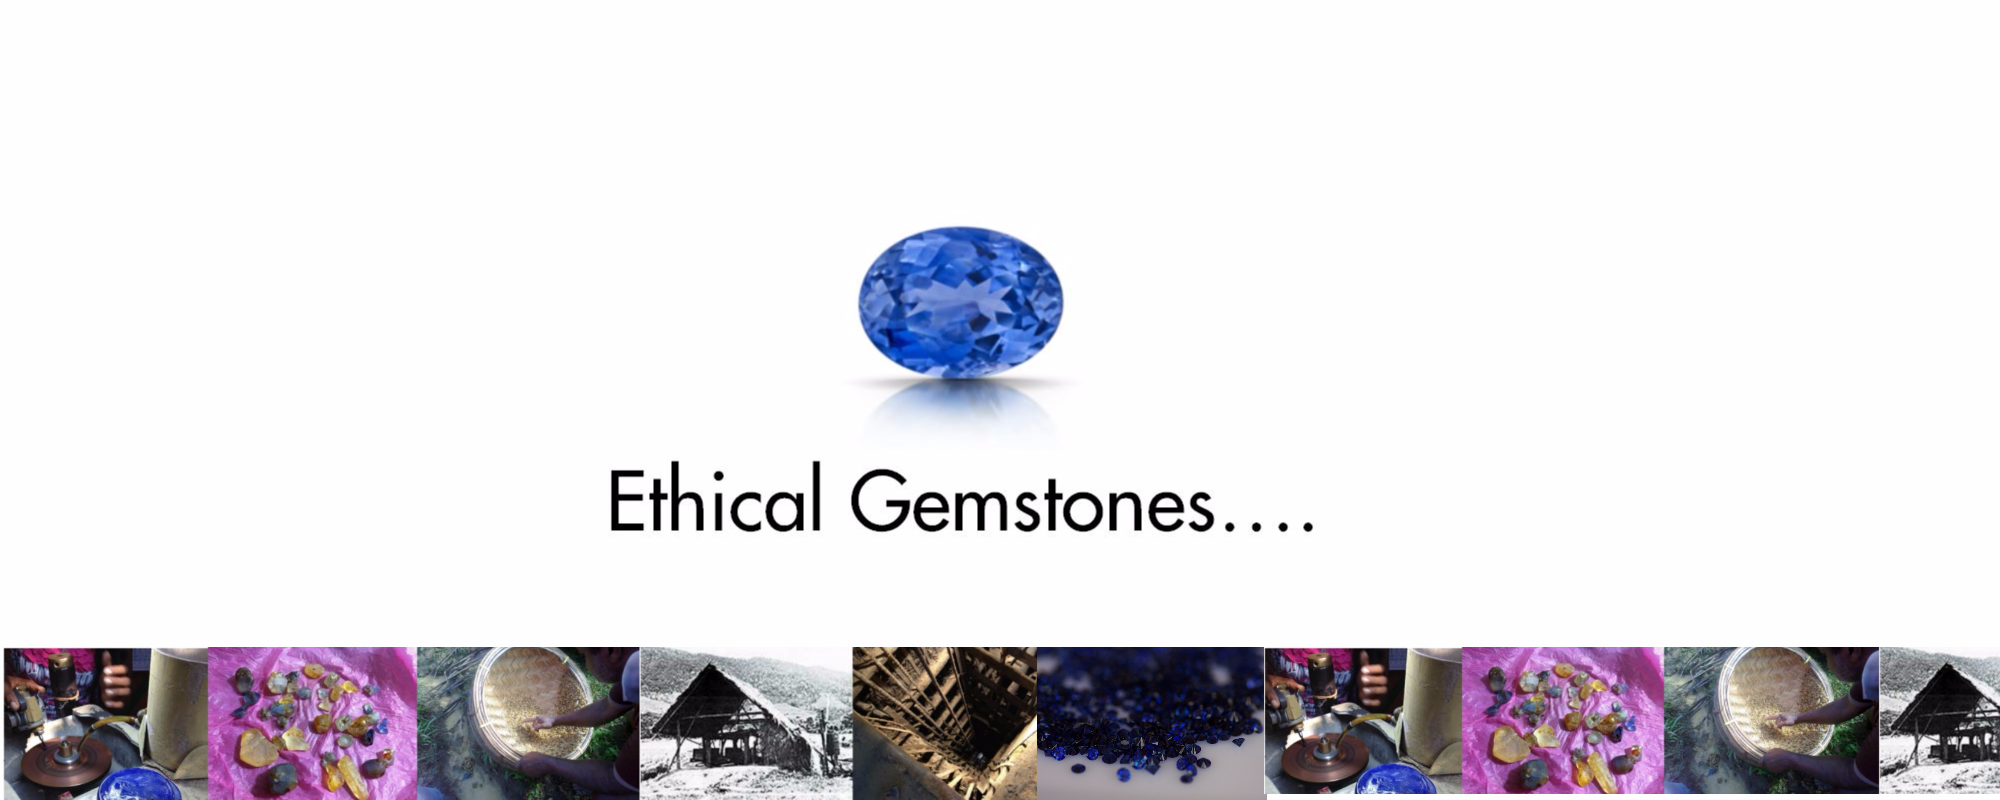 Ethical Gemstones by Nineteen48: Sapphire, Ruby, Spinel